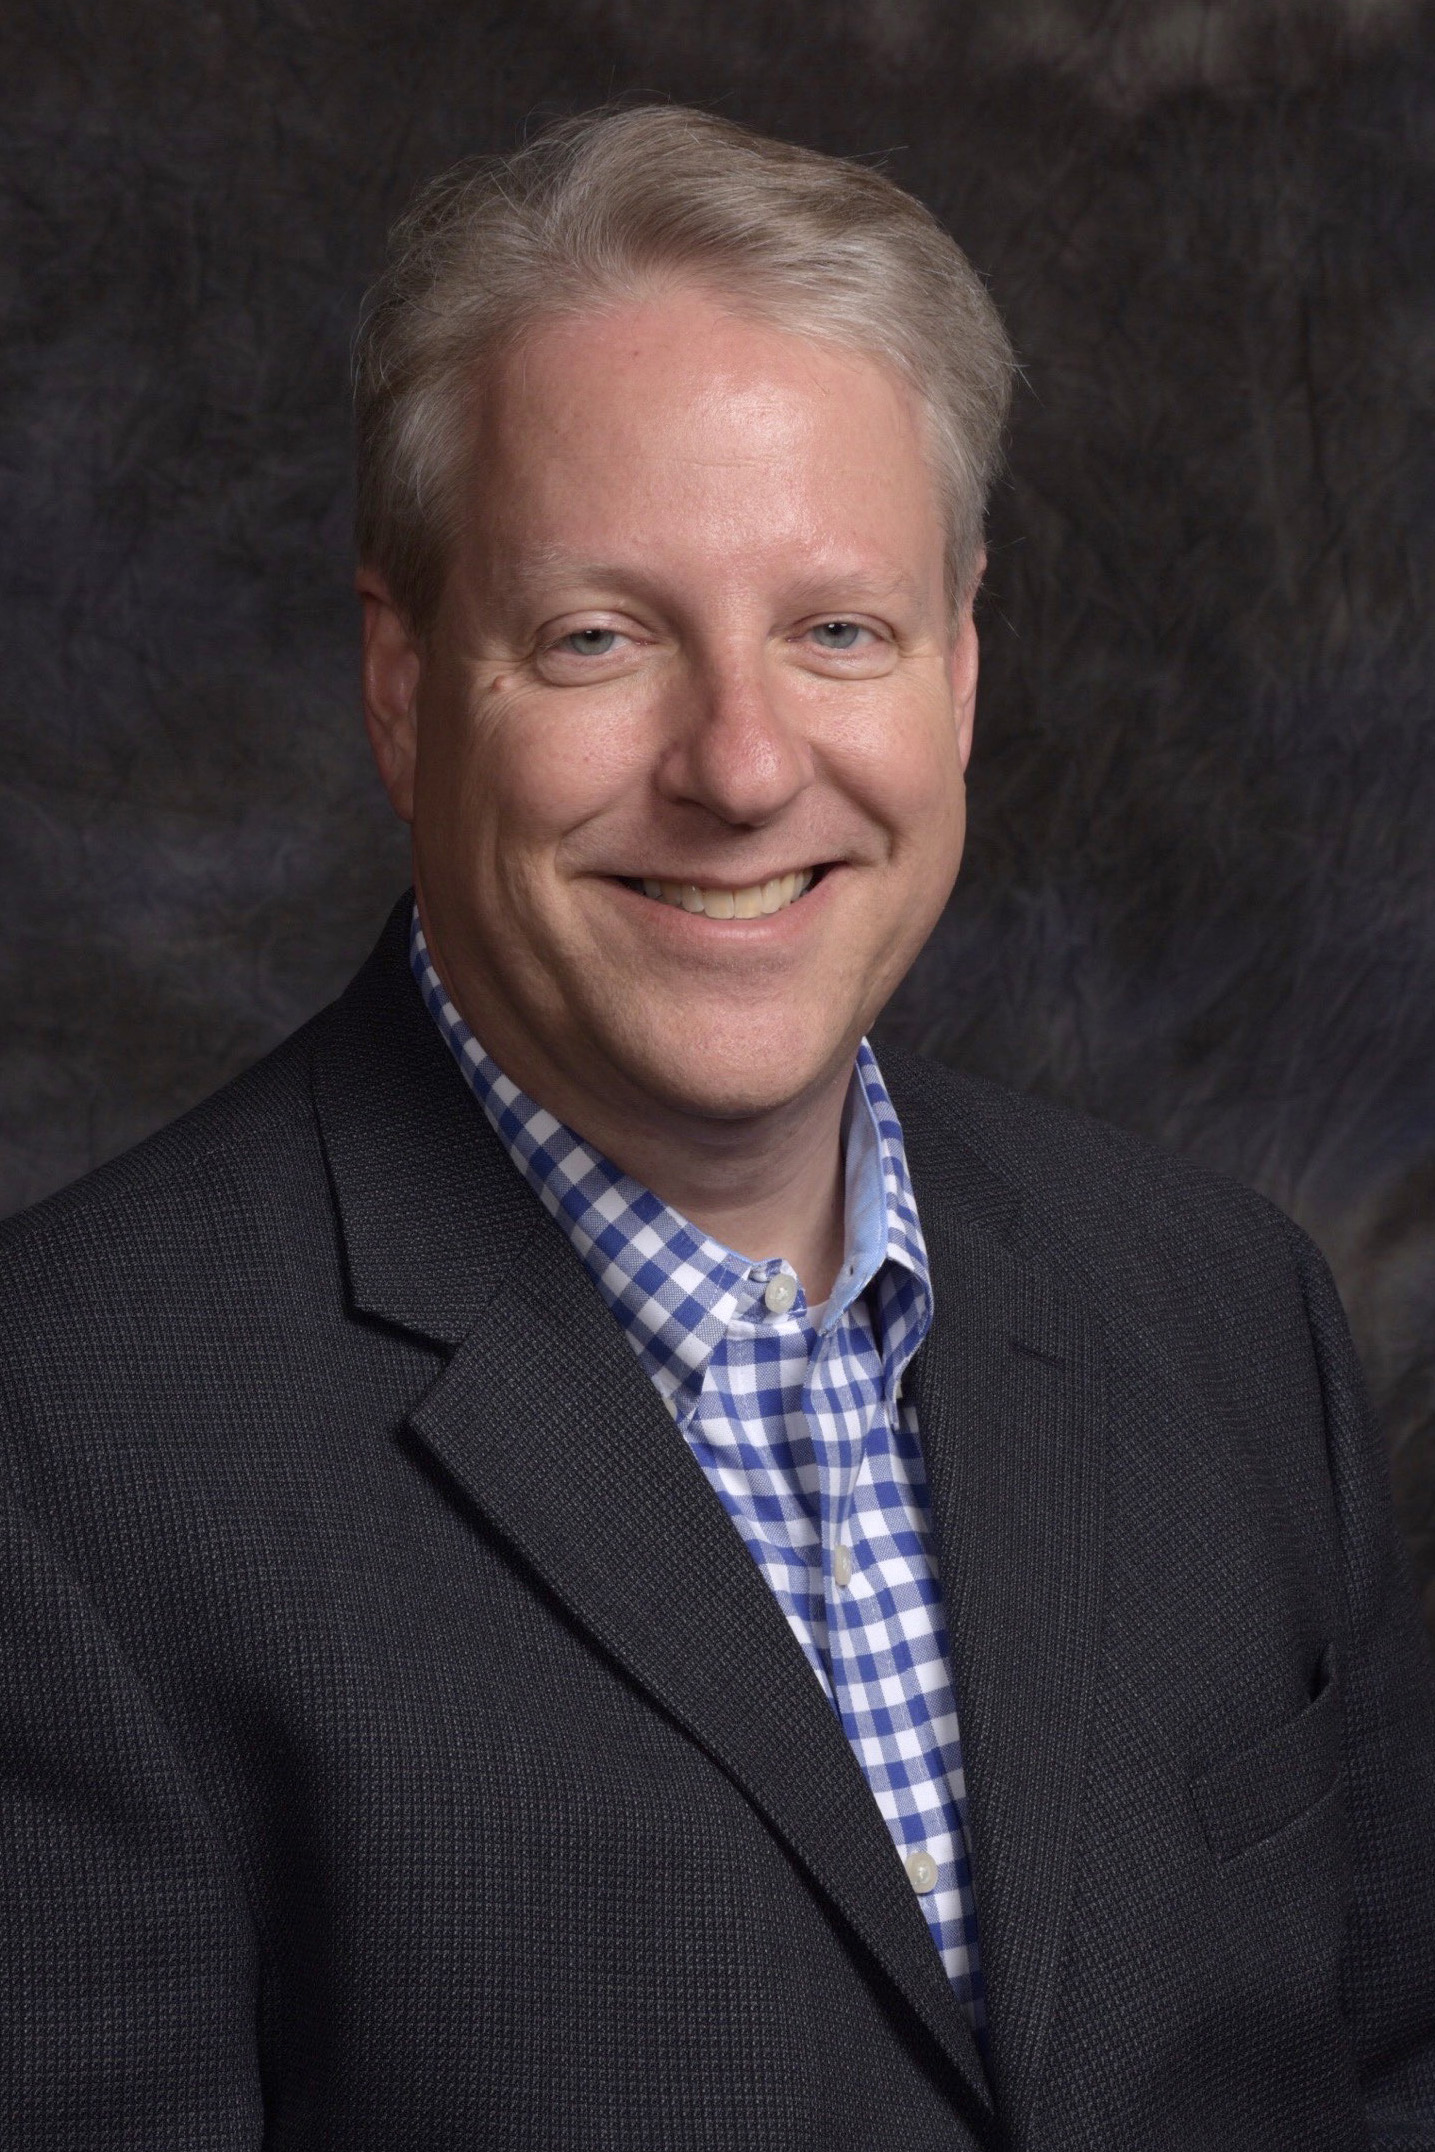 The Rev. Steve West is pastor of First United Methodist Church of Arab, Alabama. Photo courtesy of the Rev. Steve West.